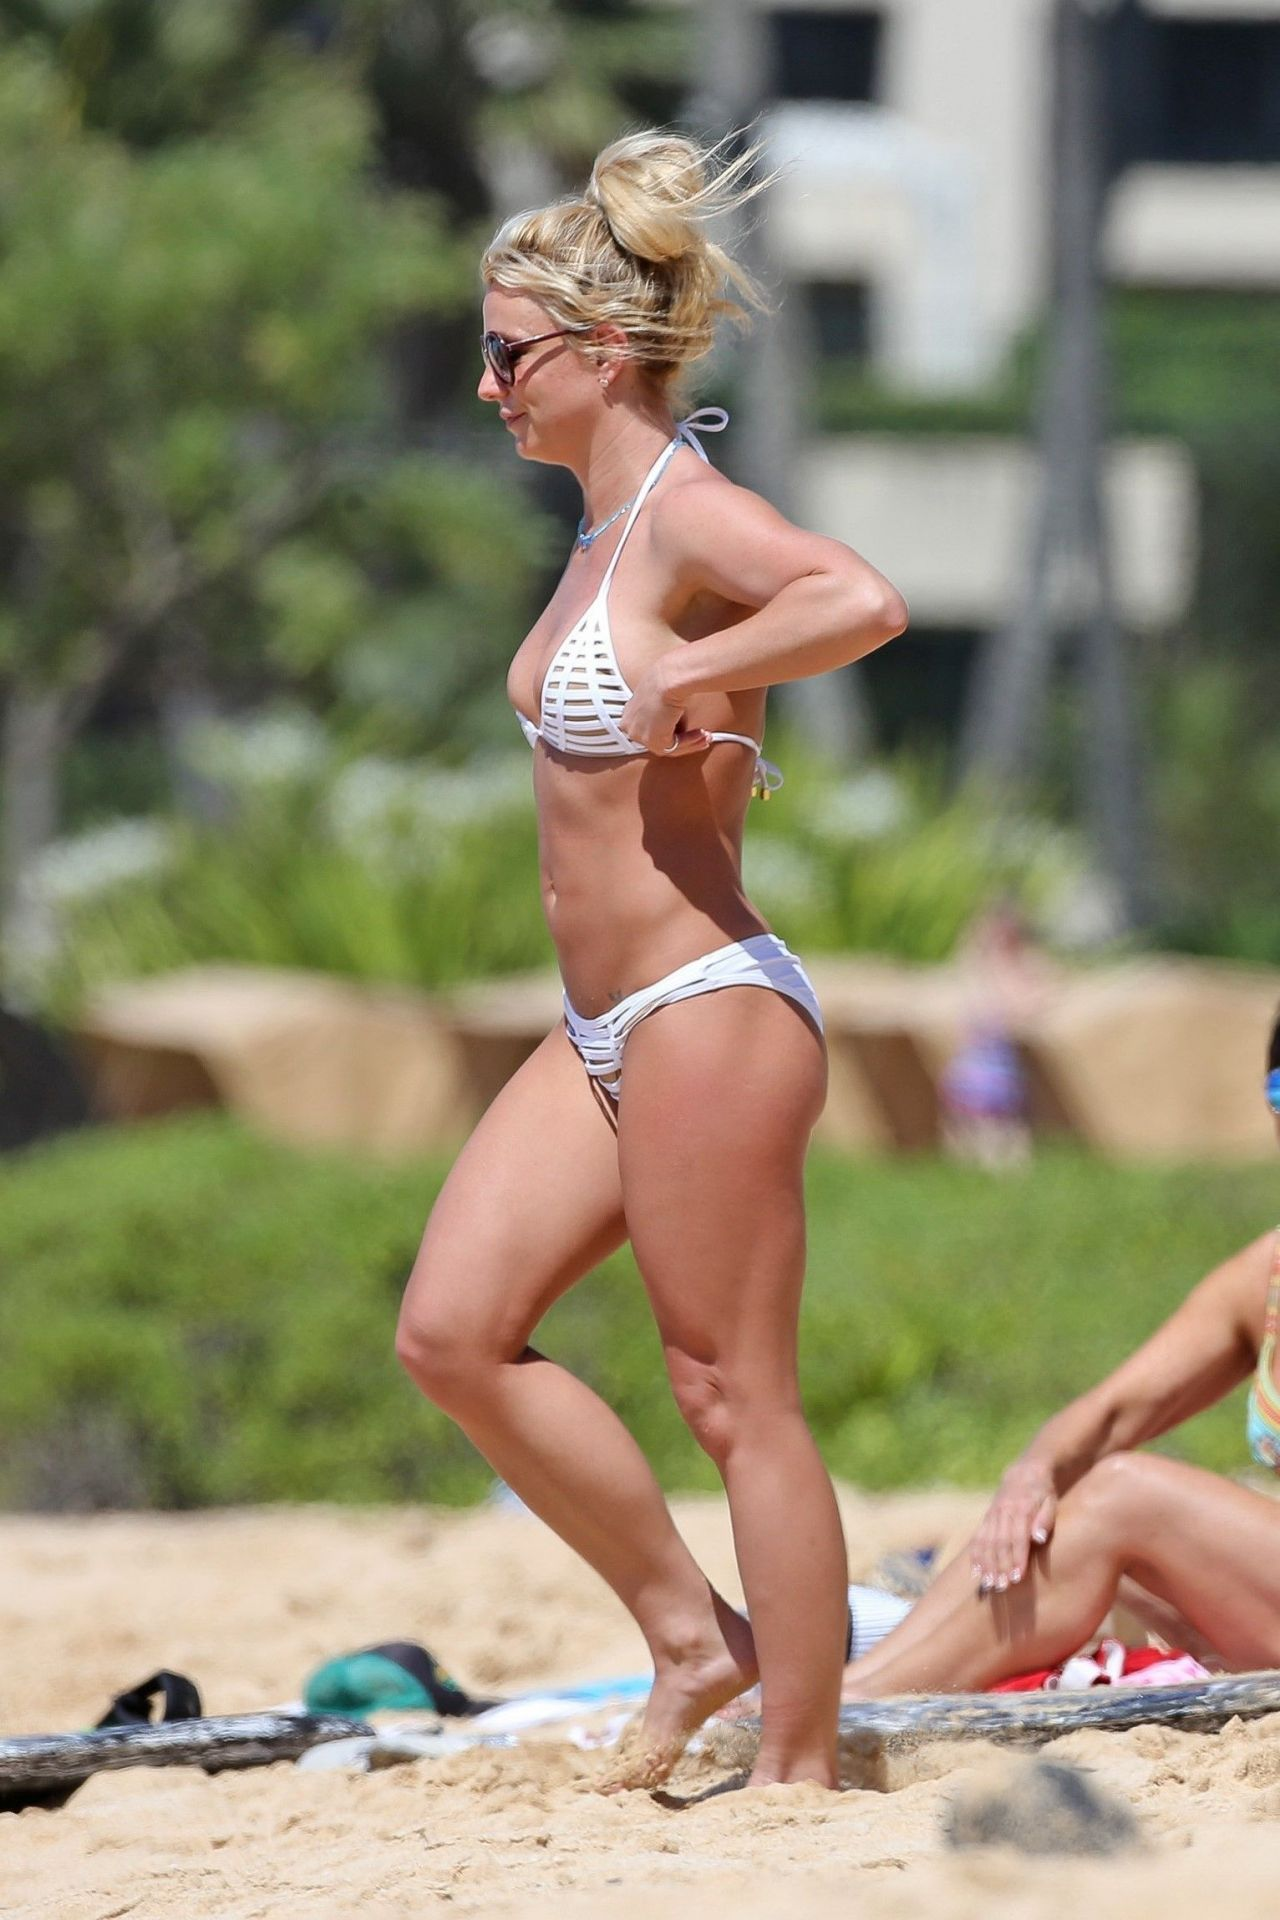 Britney spears pictures legs bikini